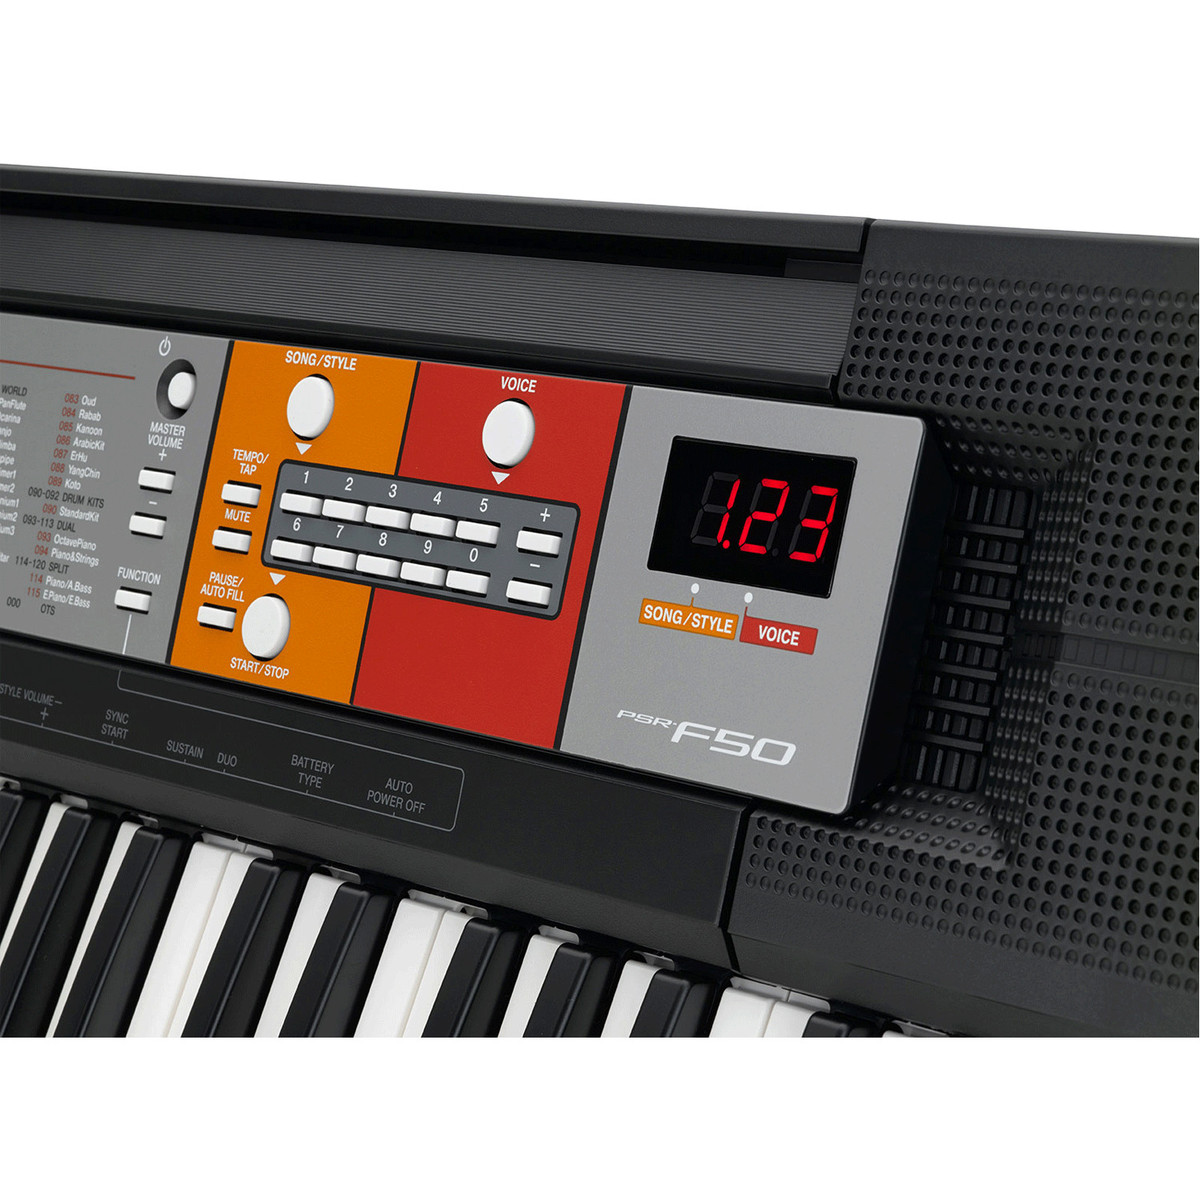 yamaha psr f50 portable keyboard at. Black Bedroom Furniture Sets. Home Design Ideas